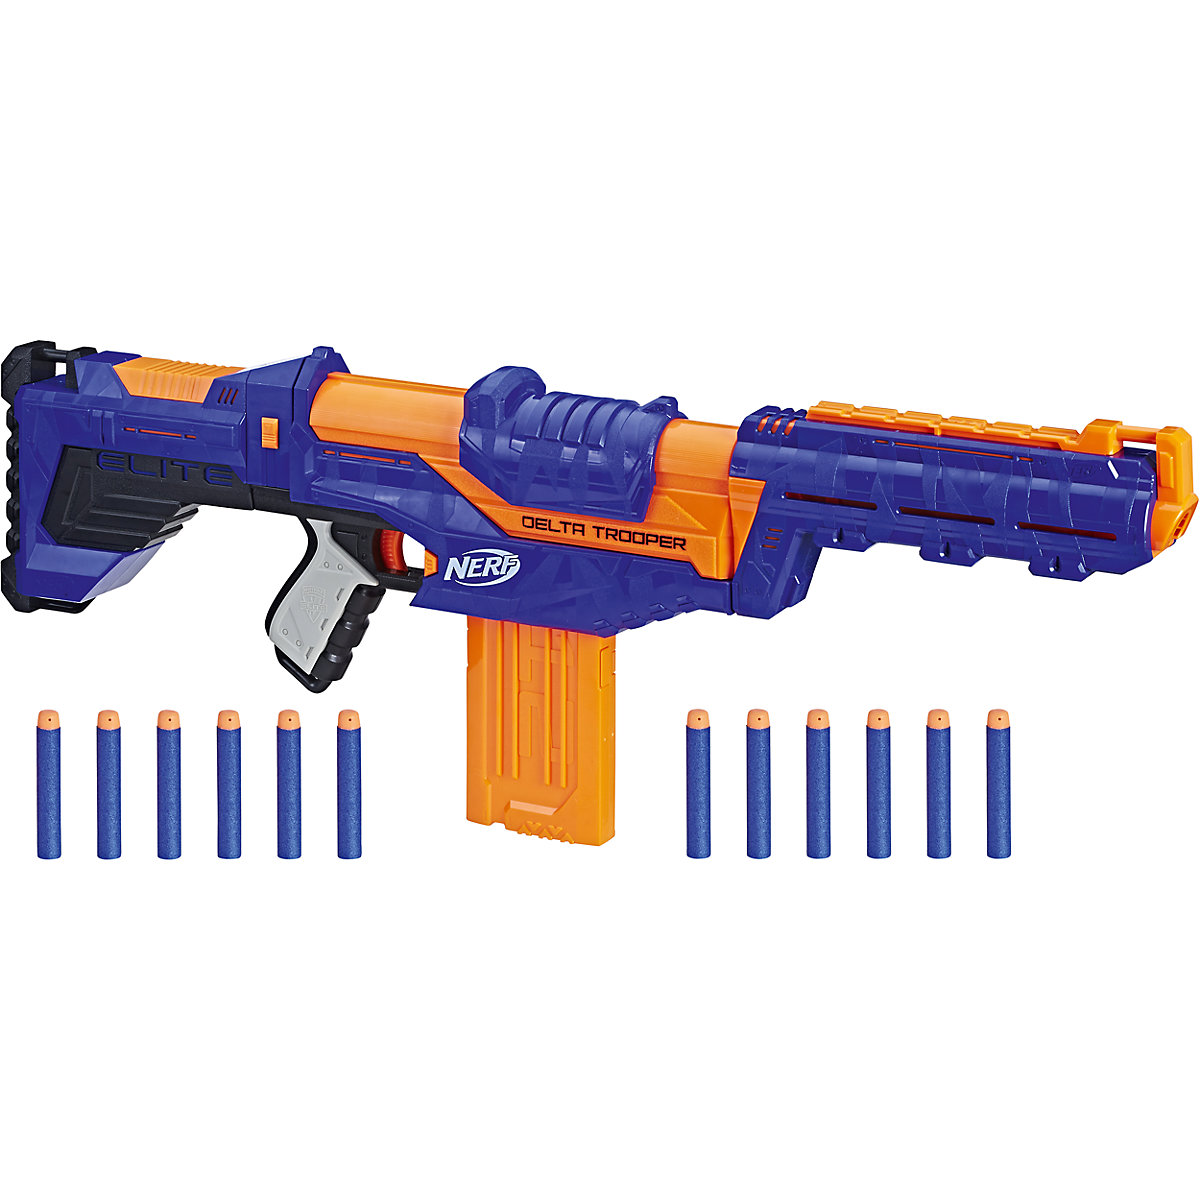 Toy Guns NERF 8376467 Children Kids Toy Gun Weapon Blasters Boys Shooting games Outdoor play toy guns nerf 3550830 children kids toy gun weapon blasters boys shooting games outdoor play